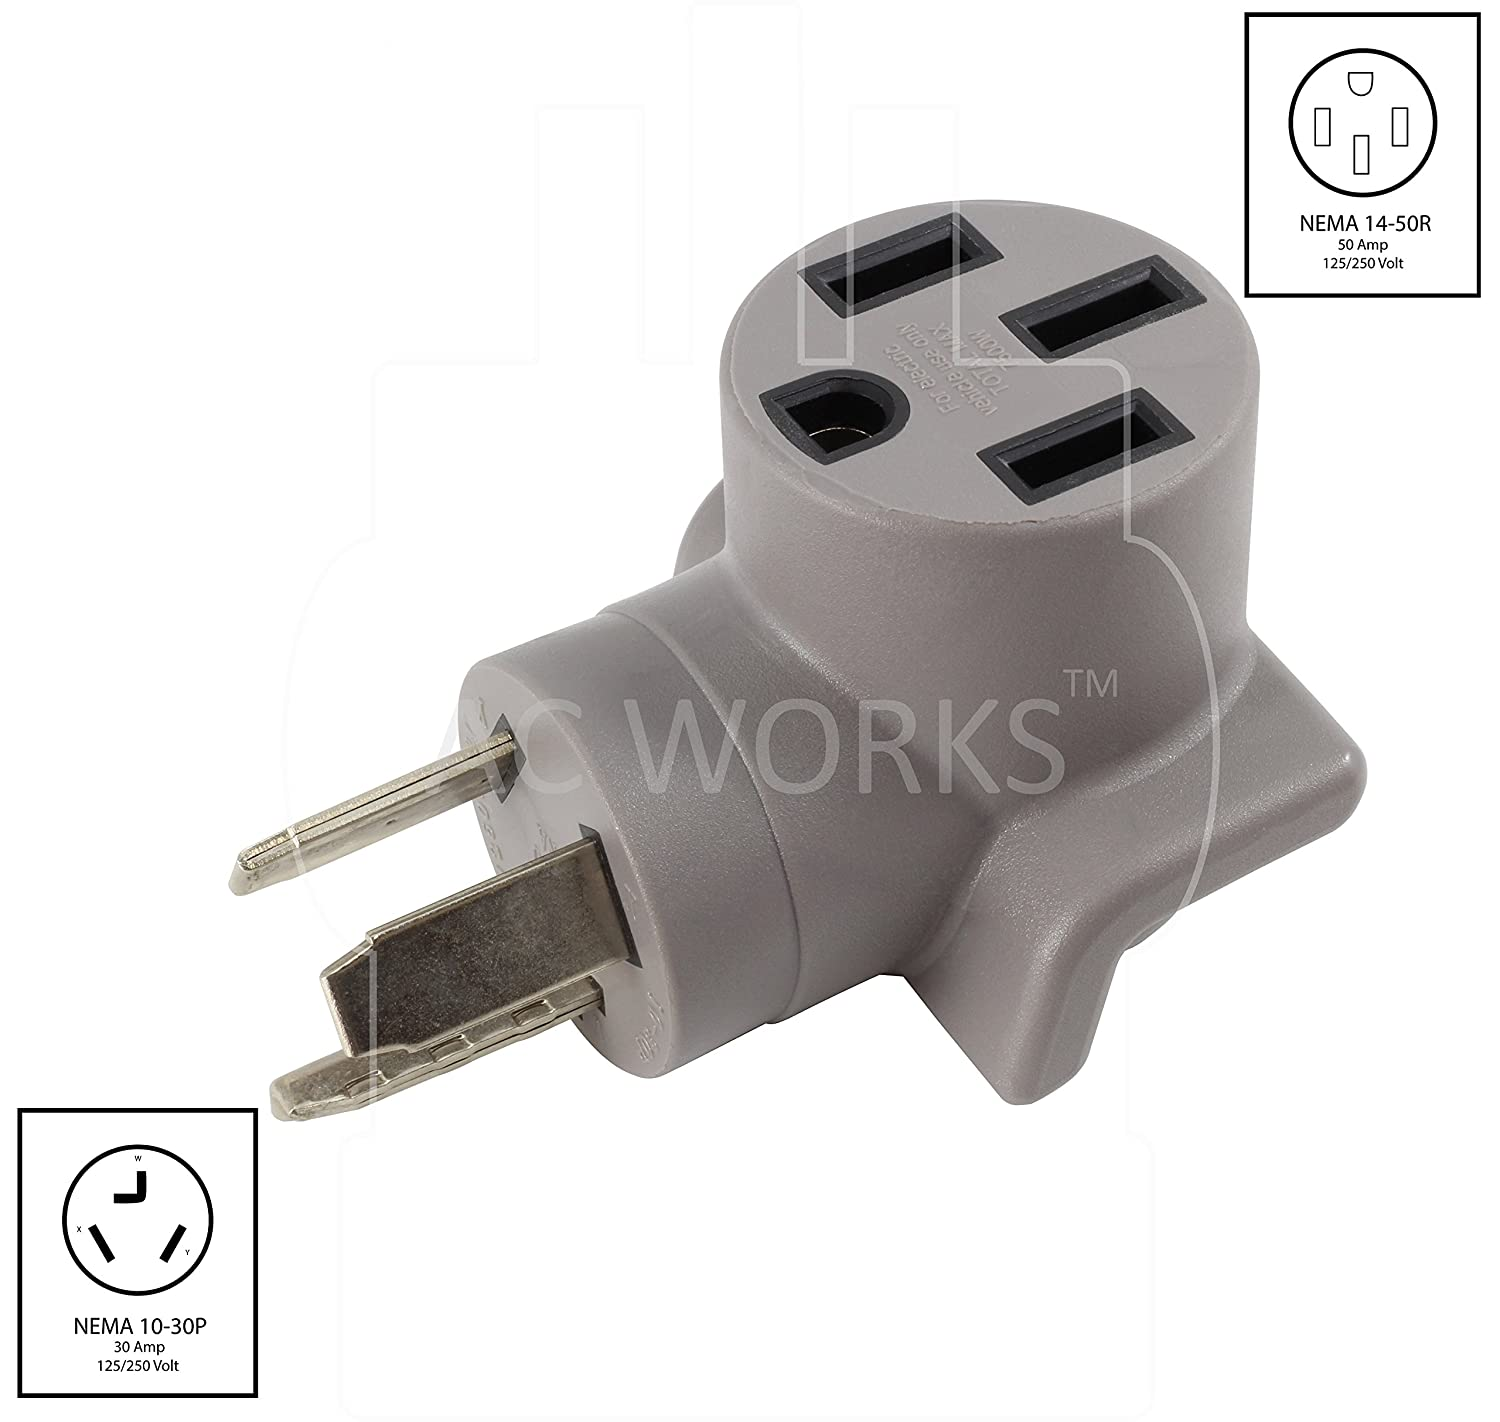 AC WORKS EV Charging Adapter for Tesla Use 10-30 30A 3-Prong Dryer to Tesla